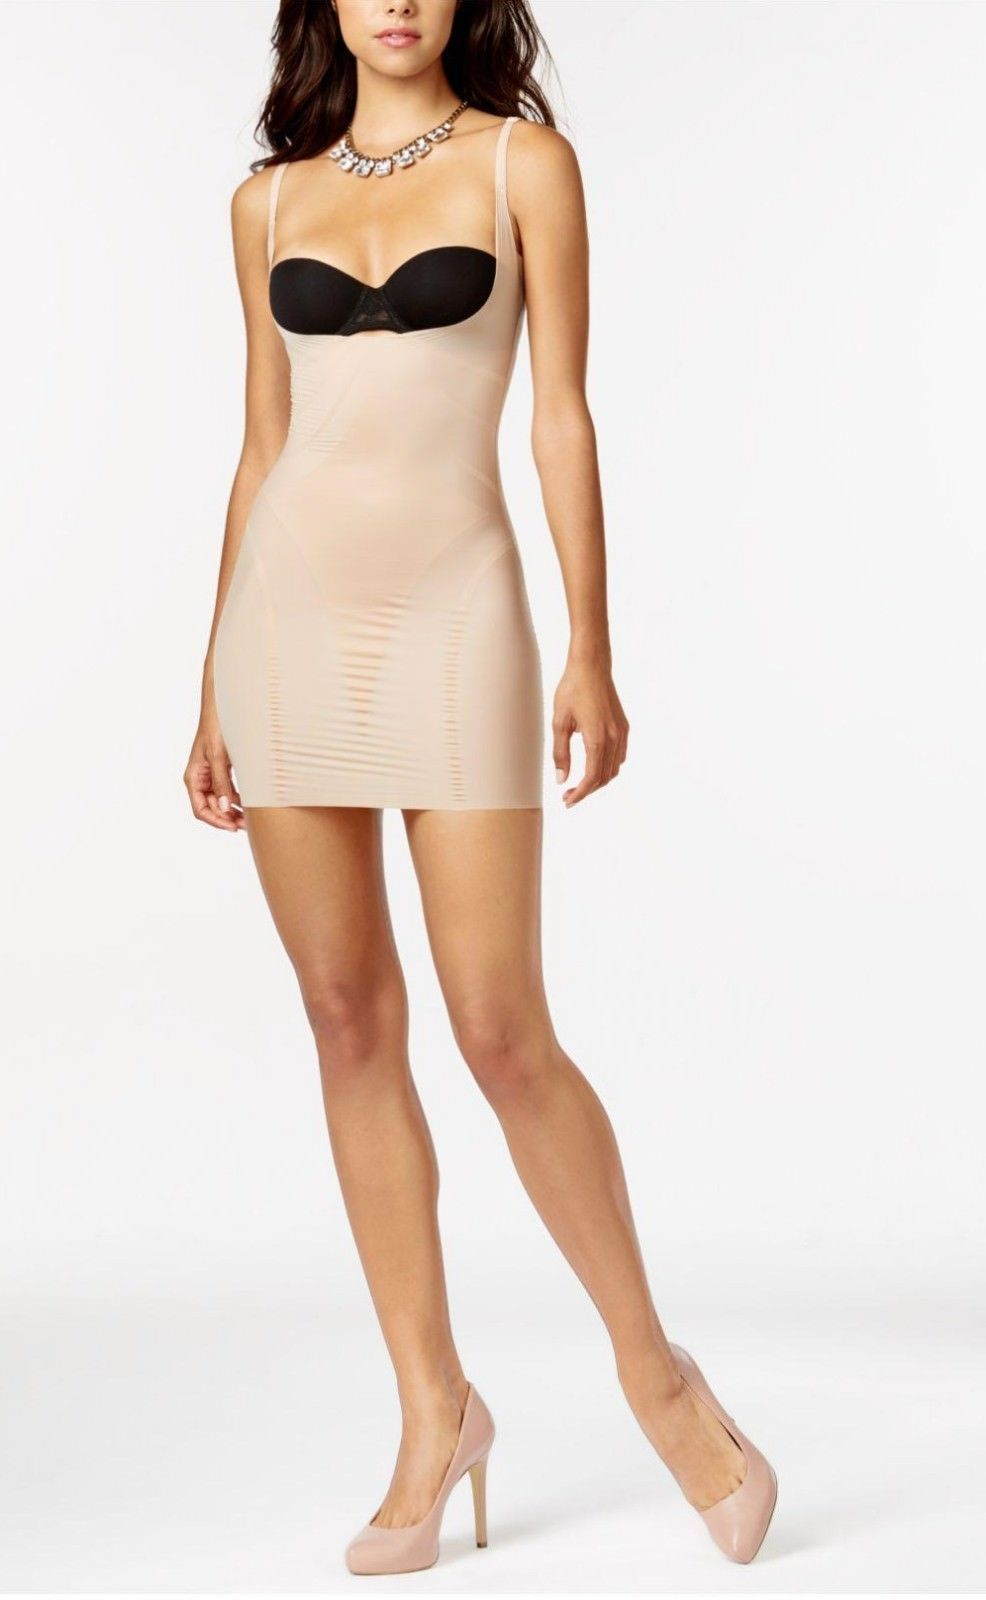 4225f9eb33 Star Power by SPANX Firm Control On Air Open and 50 similar items